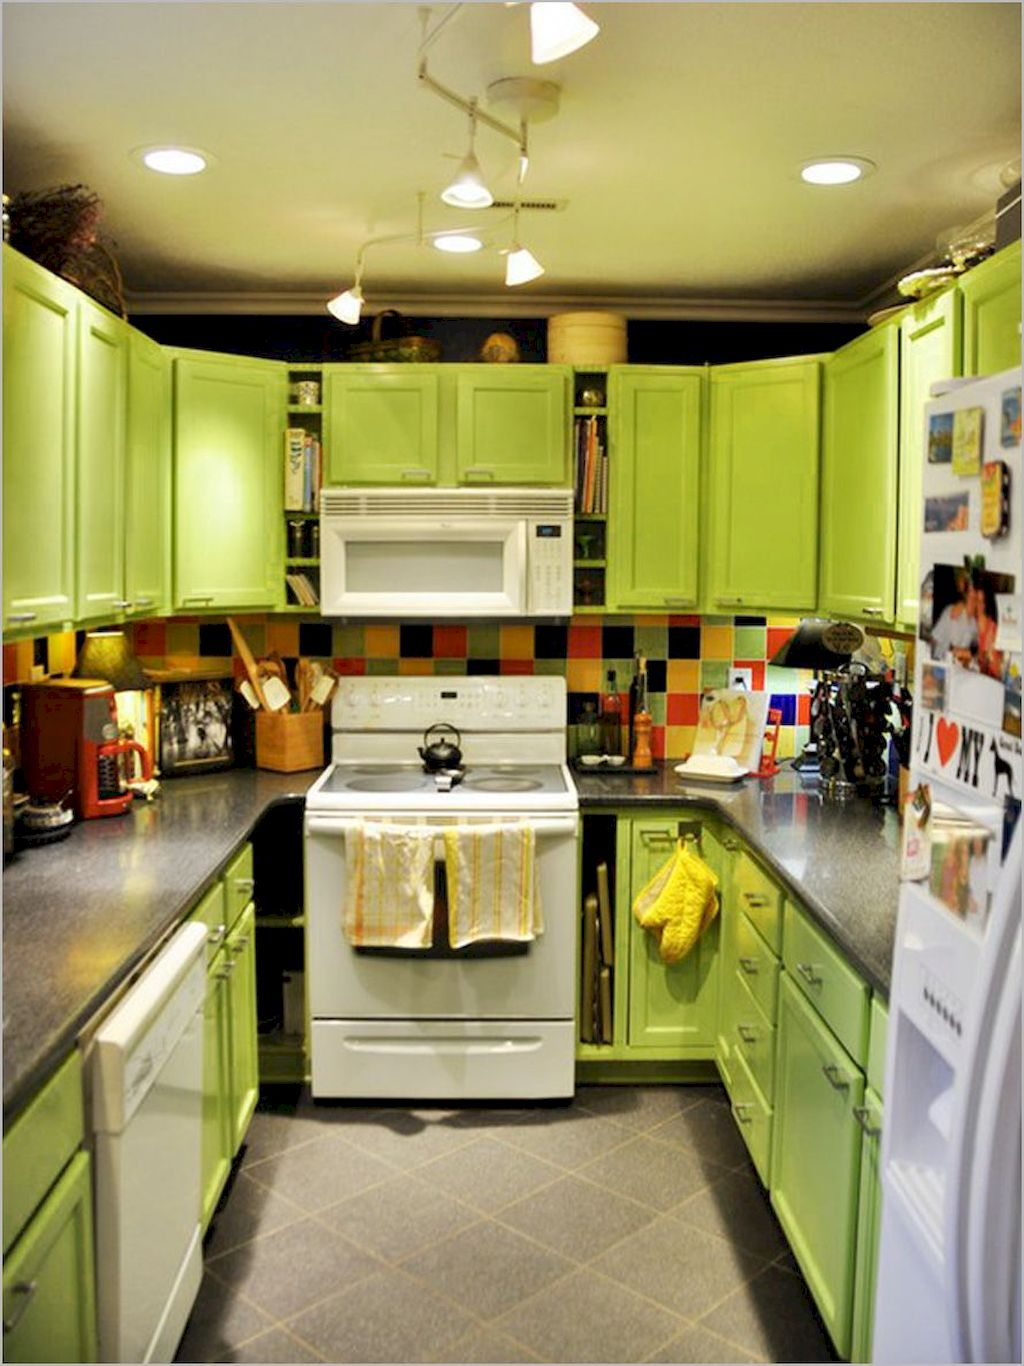 Kitchen Plan And Design For Small Room (71)